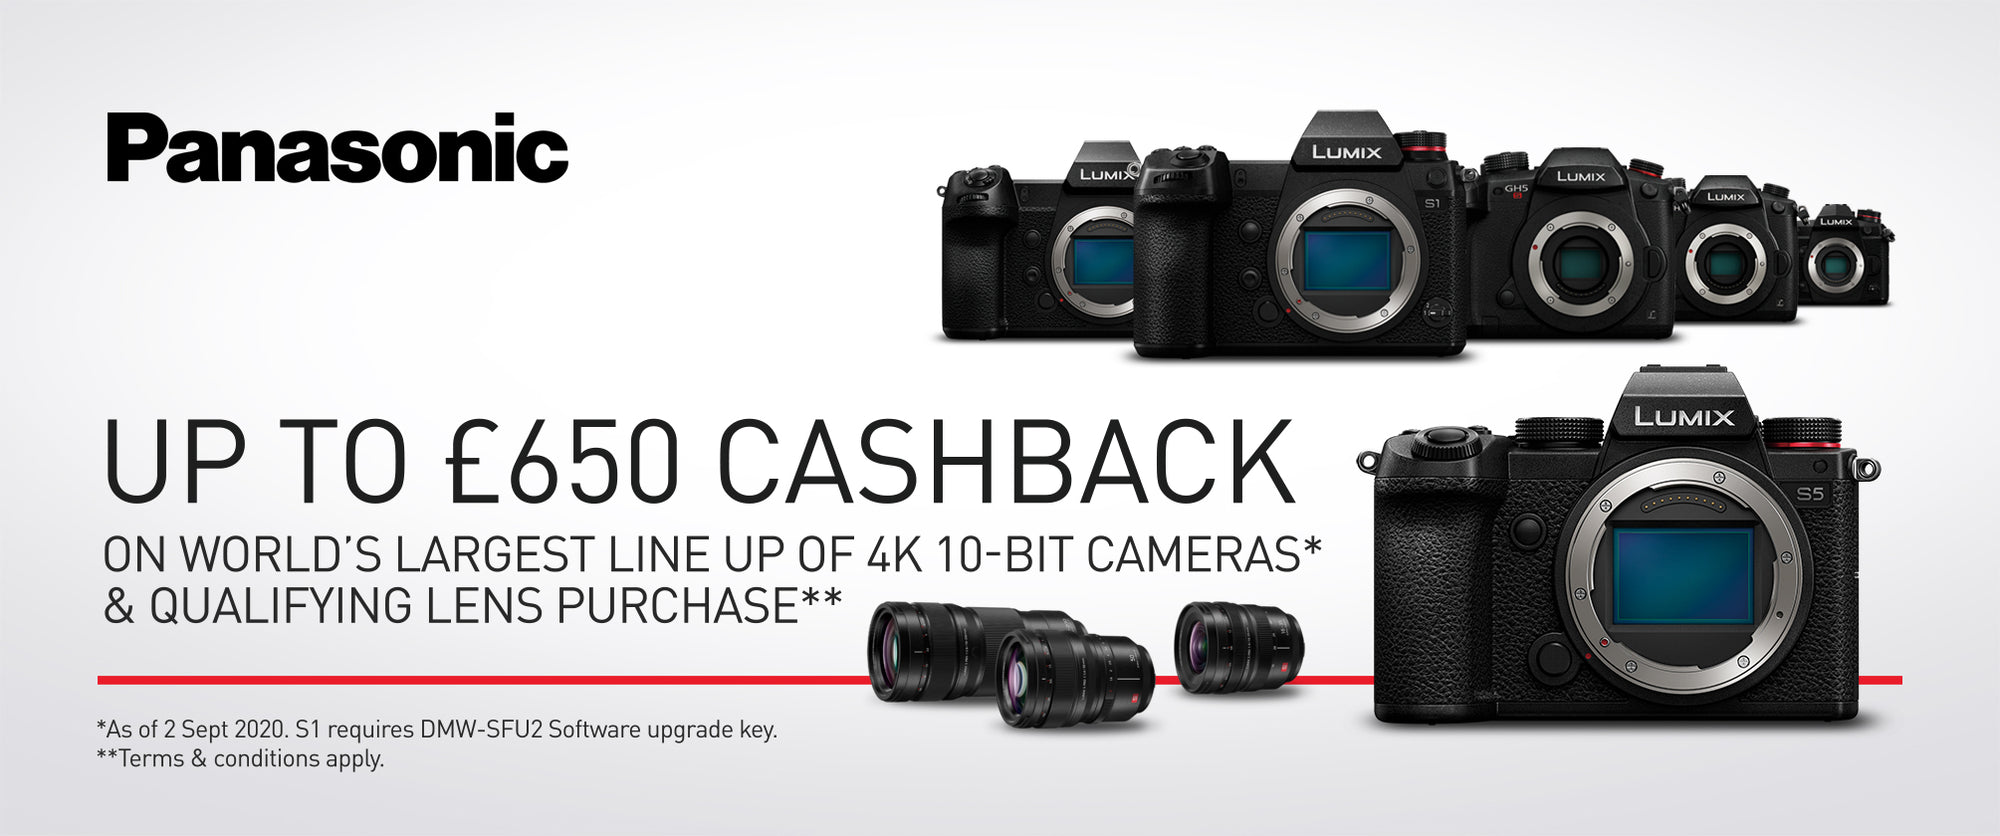 Panasonic Cashback October / November 2020 (G Series)